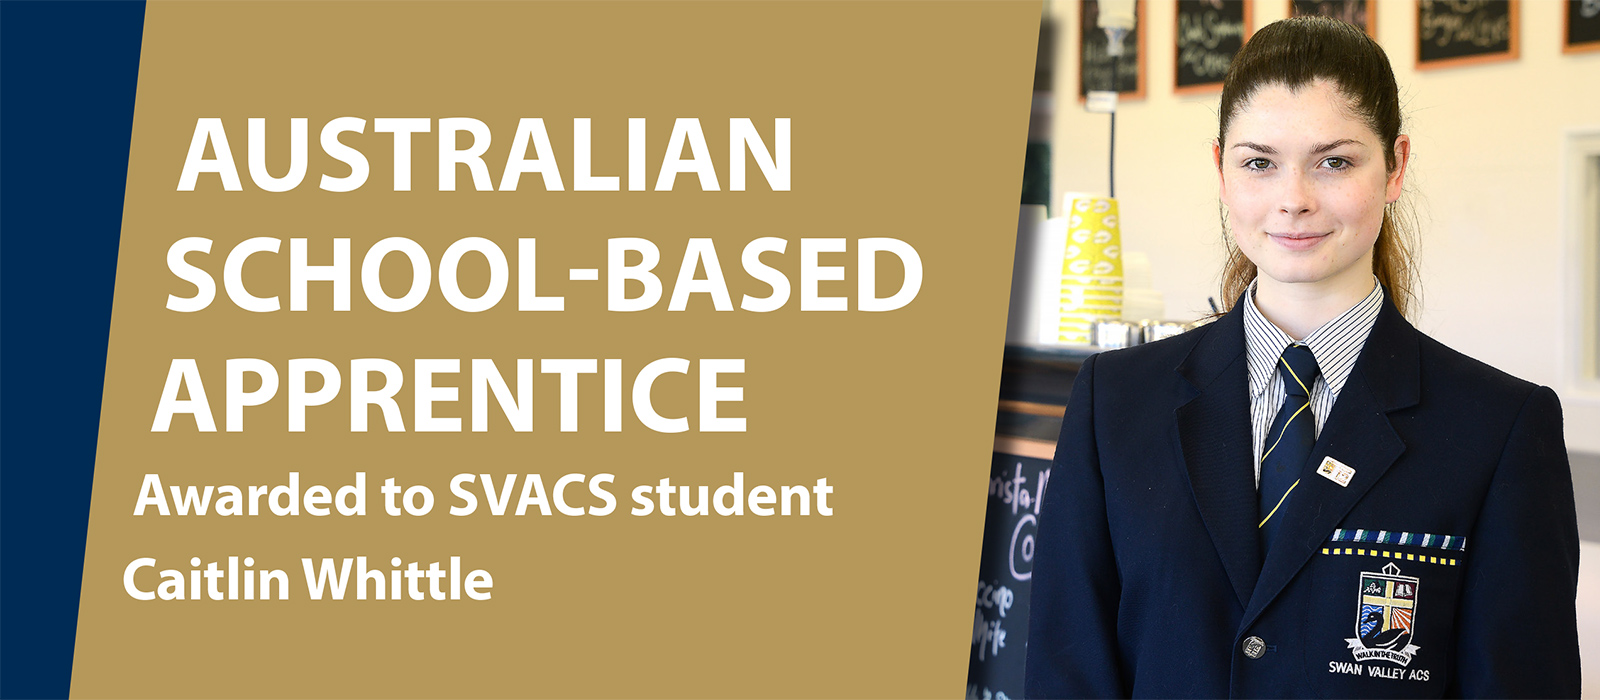 SVACS student Caitlin Whittle wins Australian School Based Apprentice 2018